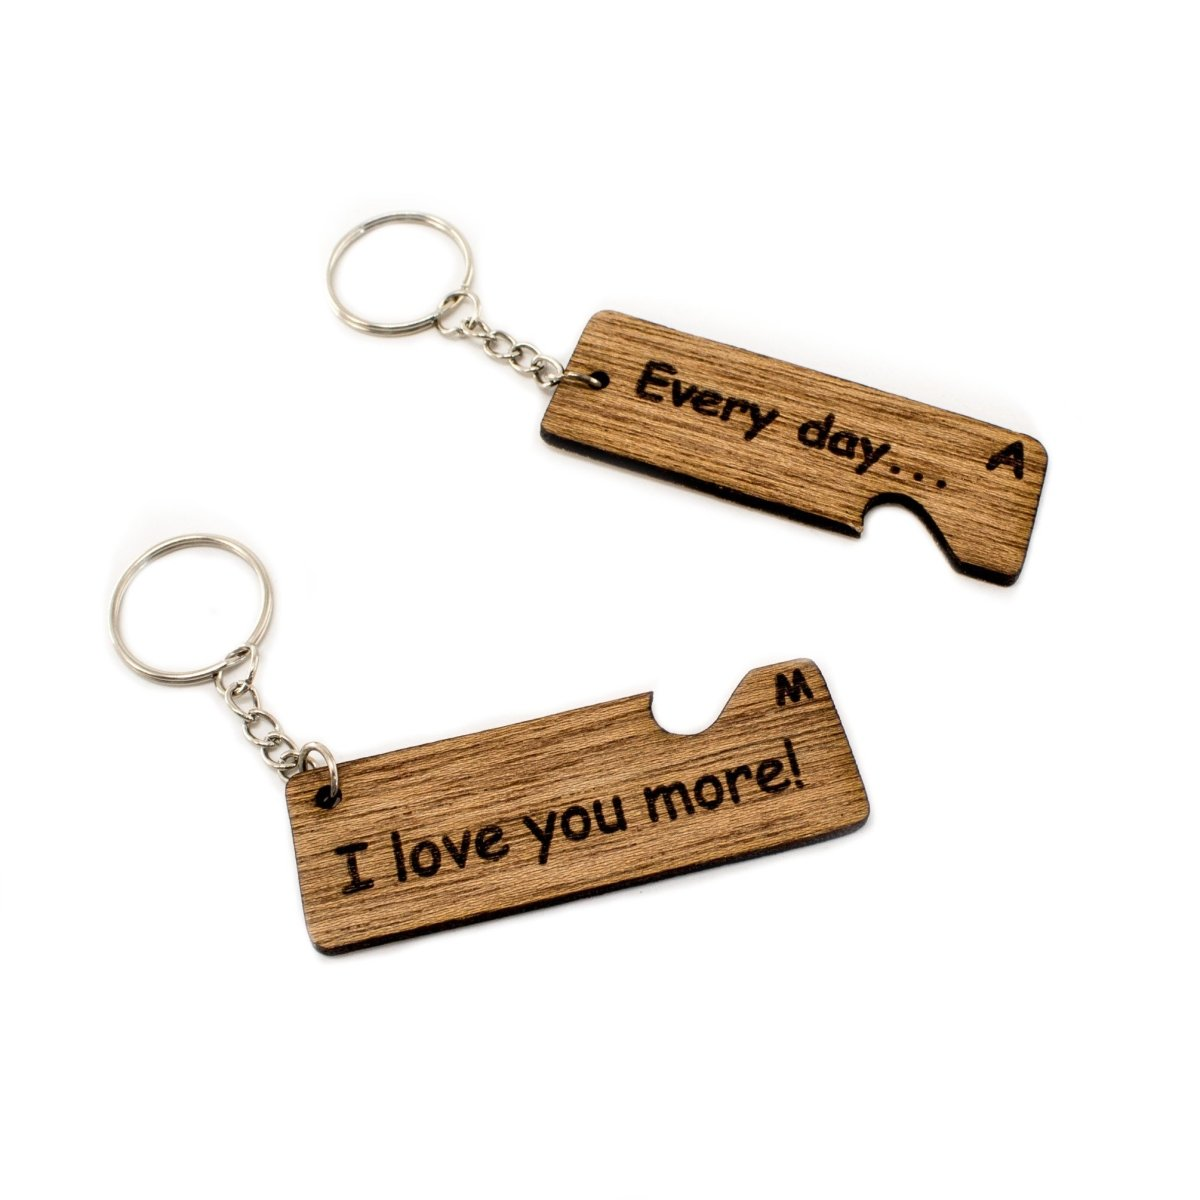 My Whole Heart Wooden Keyring | Heart Shaped Keychain | Best Custom Gift for Boyfriend/Girlfriend - Wooderland